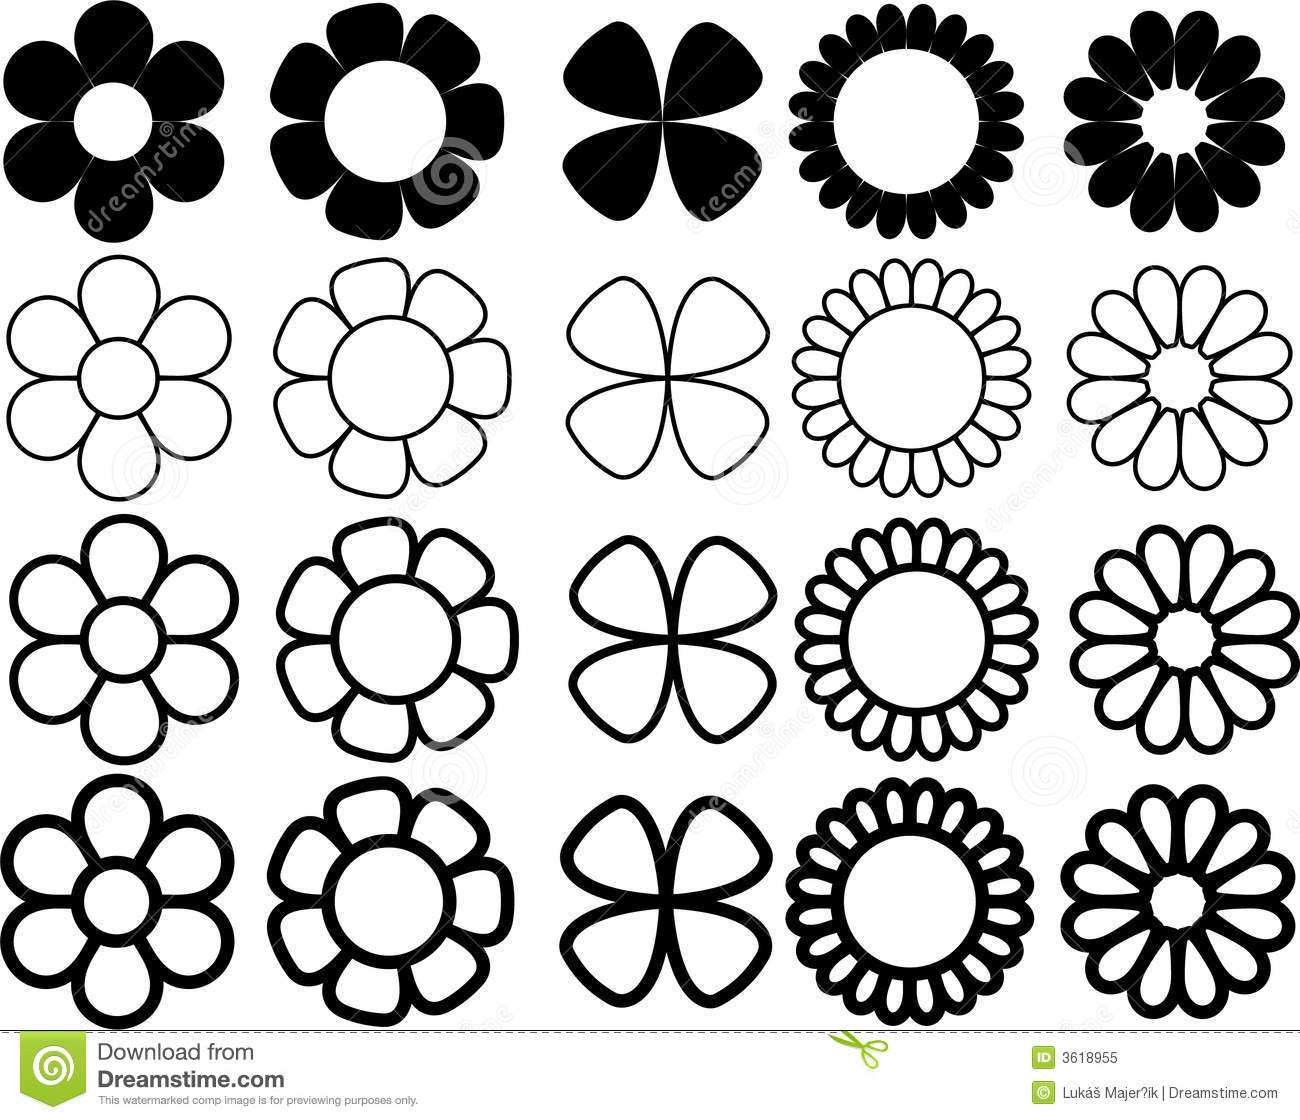 Simple flowers black and white illustration 3618955 megapixl mightylinksfo